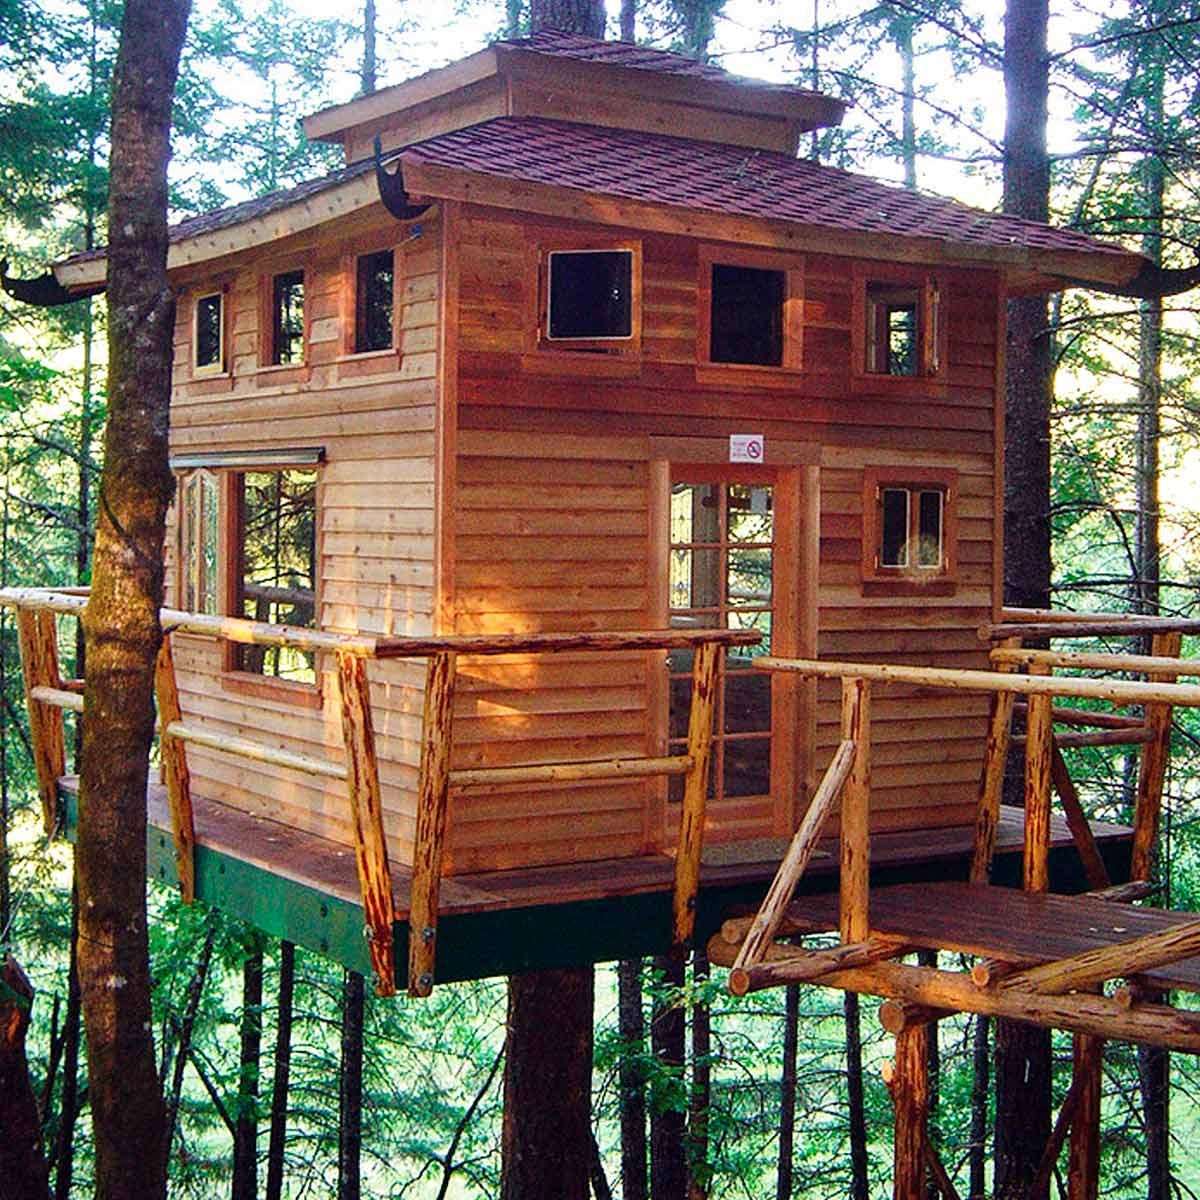 Home Design Ideas Build: Amazing Treehouse Ideas And Building Tips